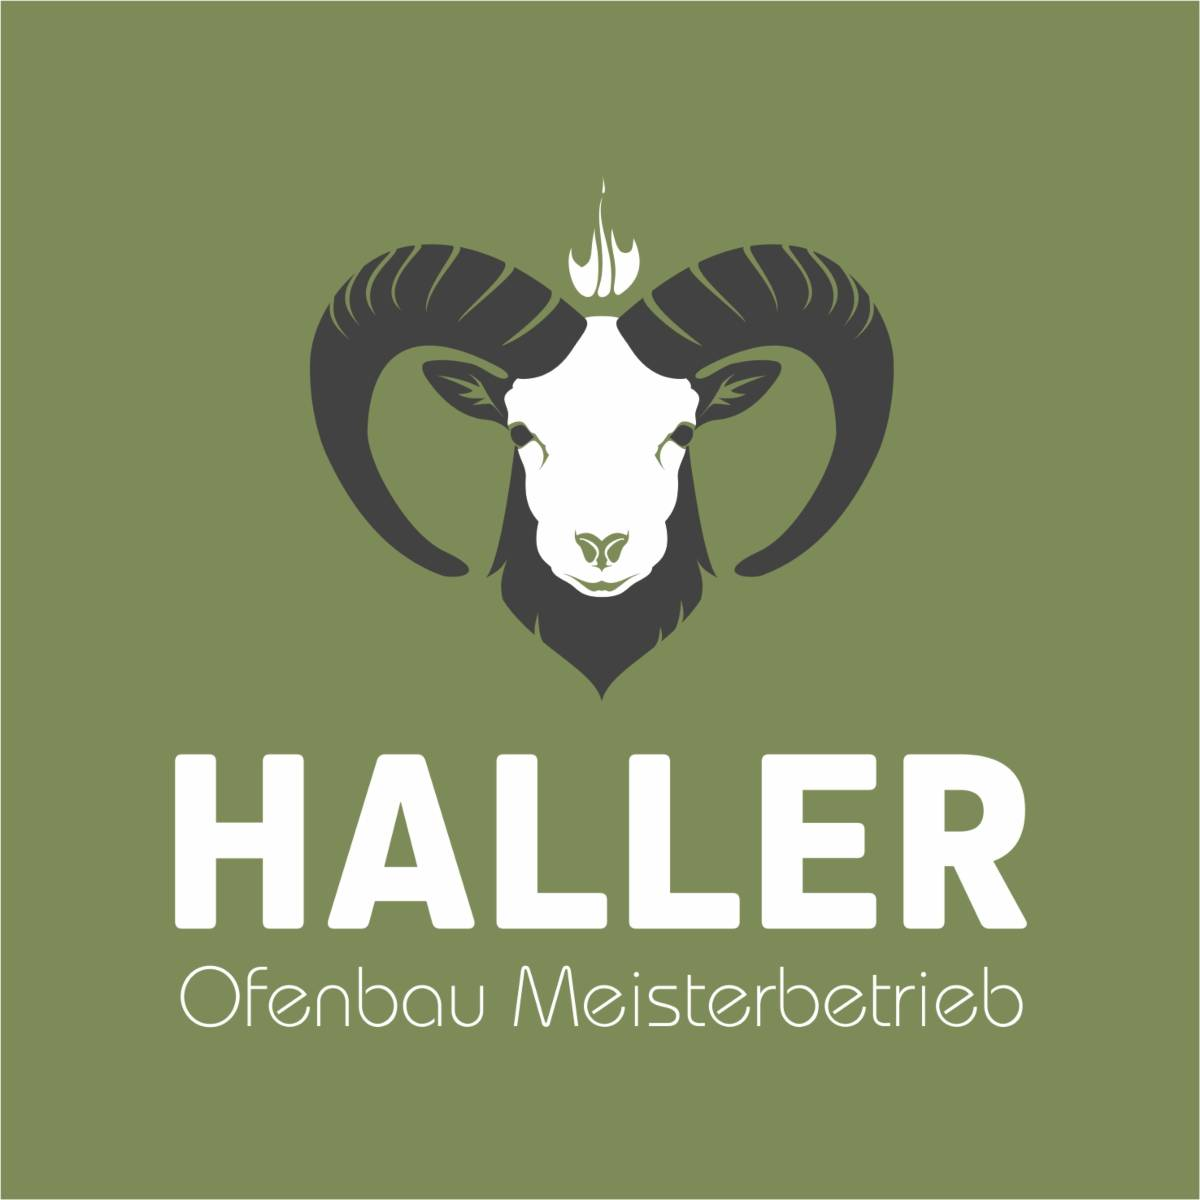 Corporate Design | Haller - Ofenbau Meisterbetrieb